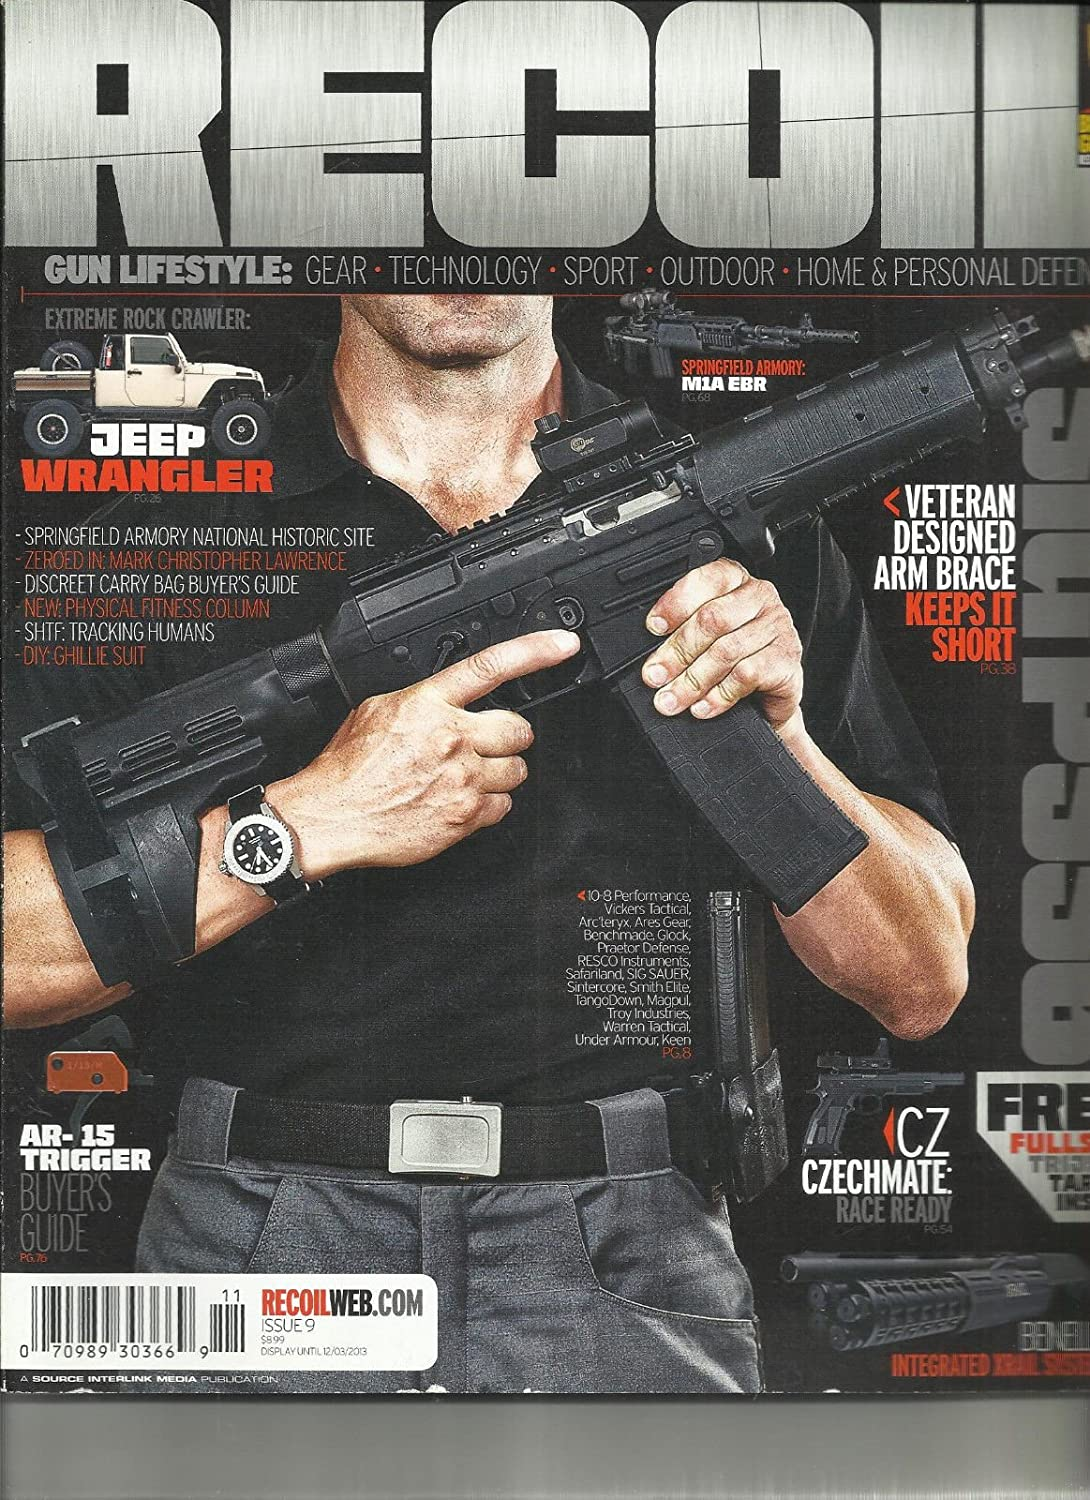 RECOIL MAGAZINE, 2013 ISSUE, 09 (GUN LIFESTYLE : GEAR * TECHNOLOGY * SPORT) s3457